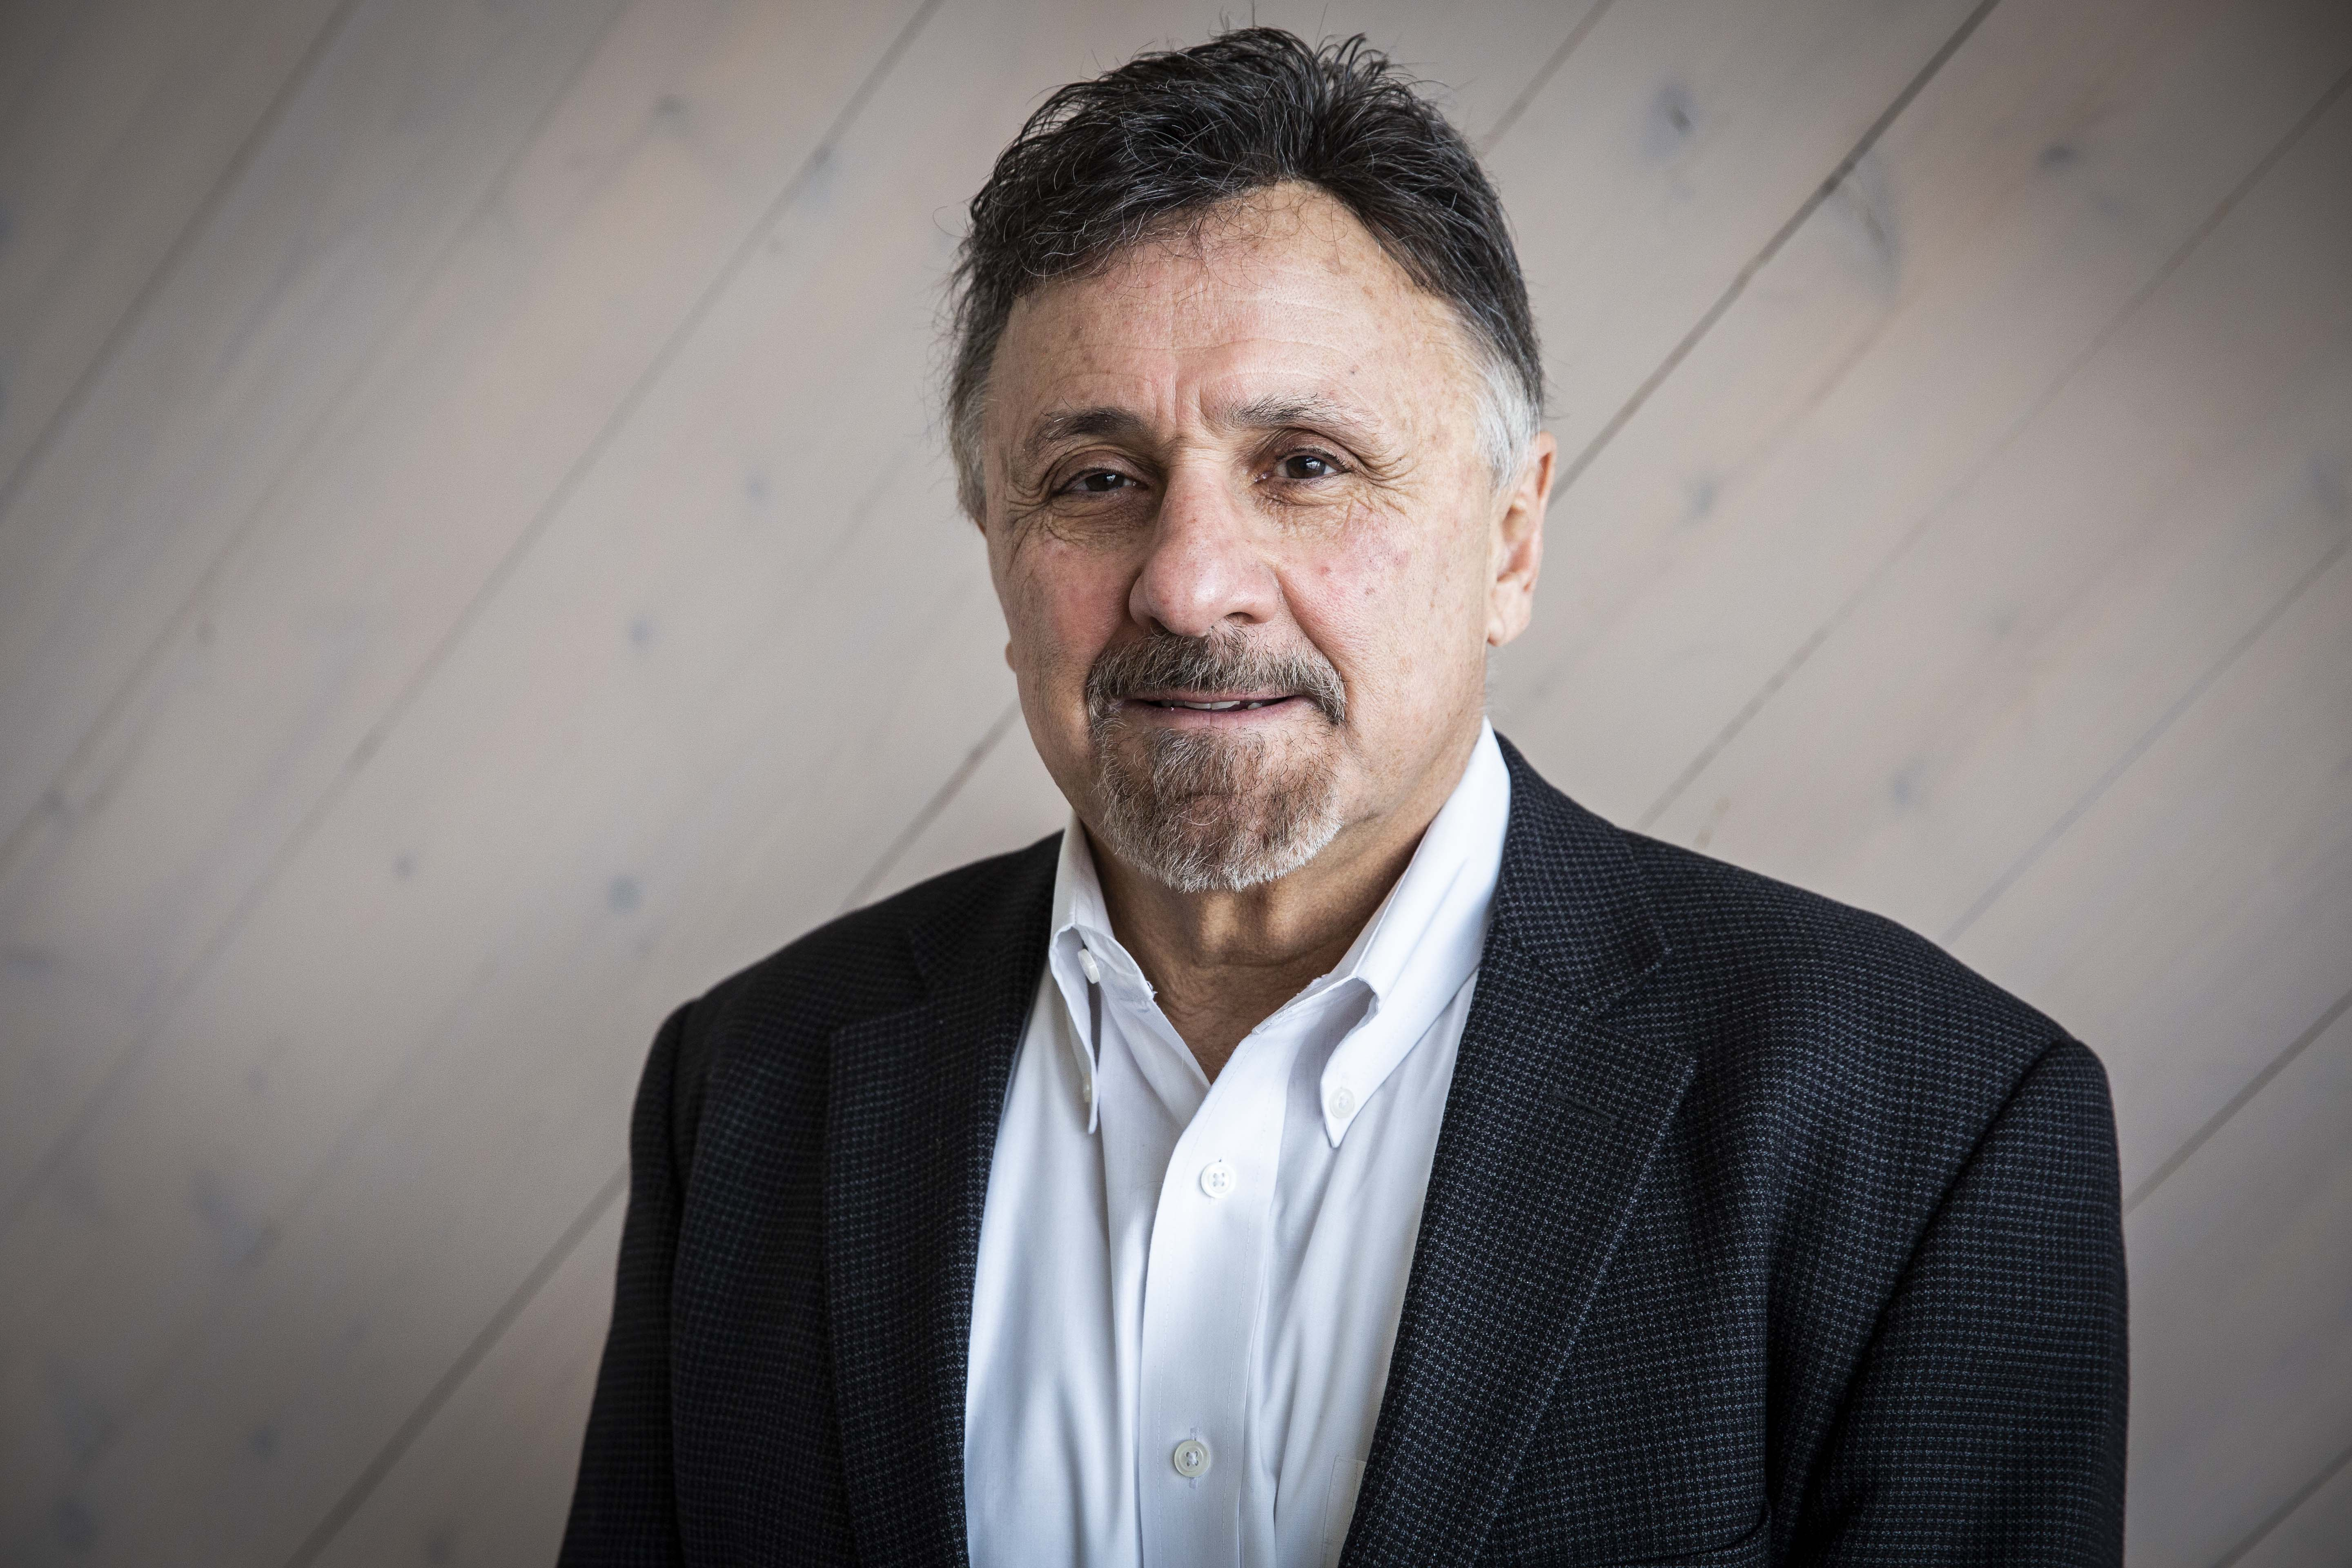 <p>Frank DeAngelis was principal of Columbine High School for nearly 20 years, including during the shooting there in April 1999.</p>